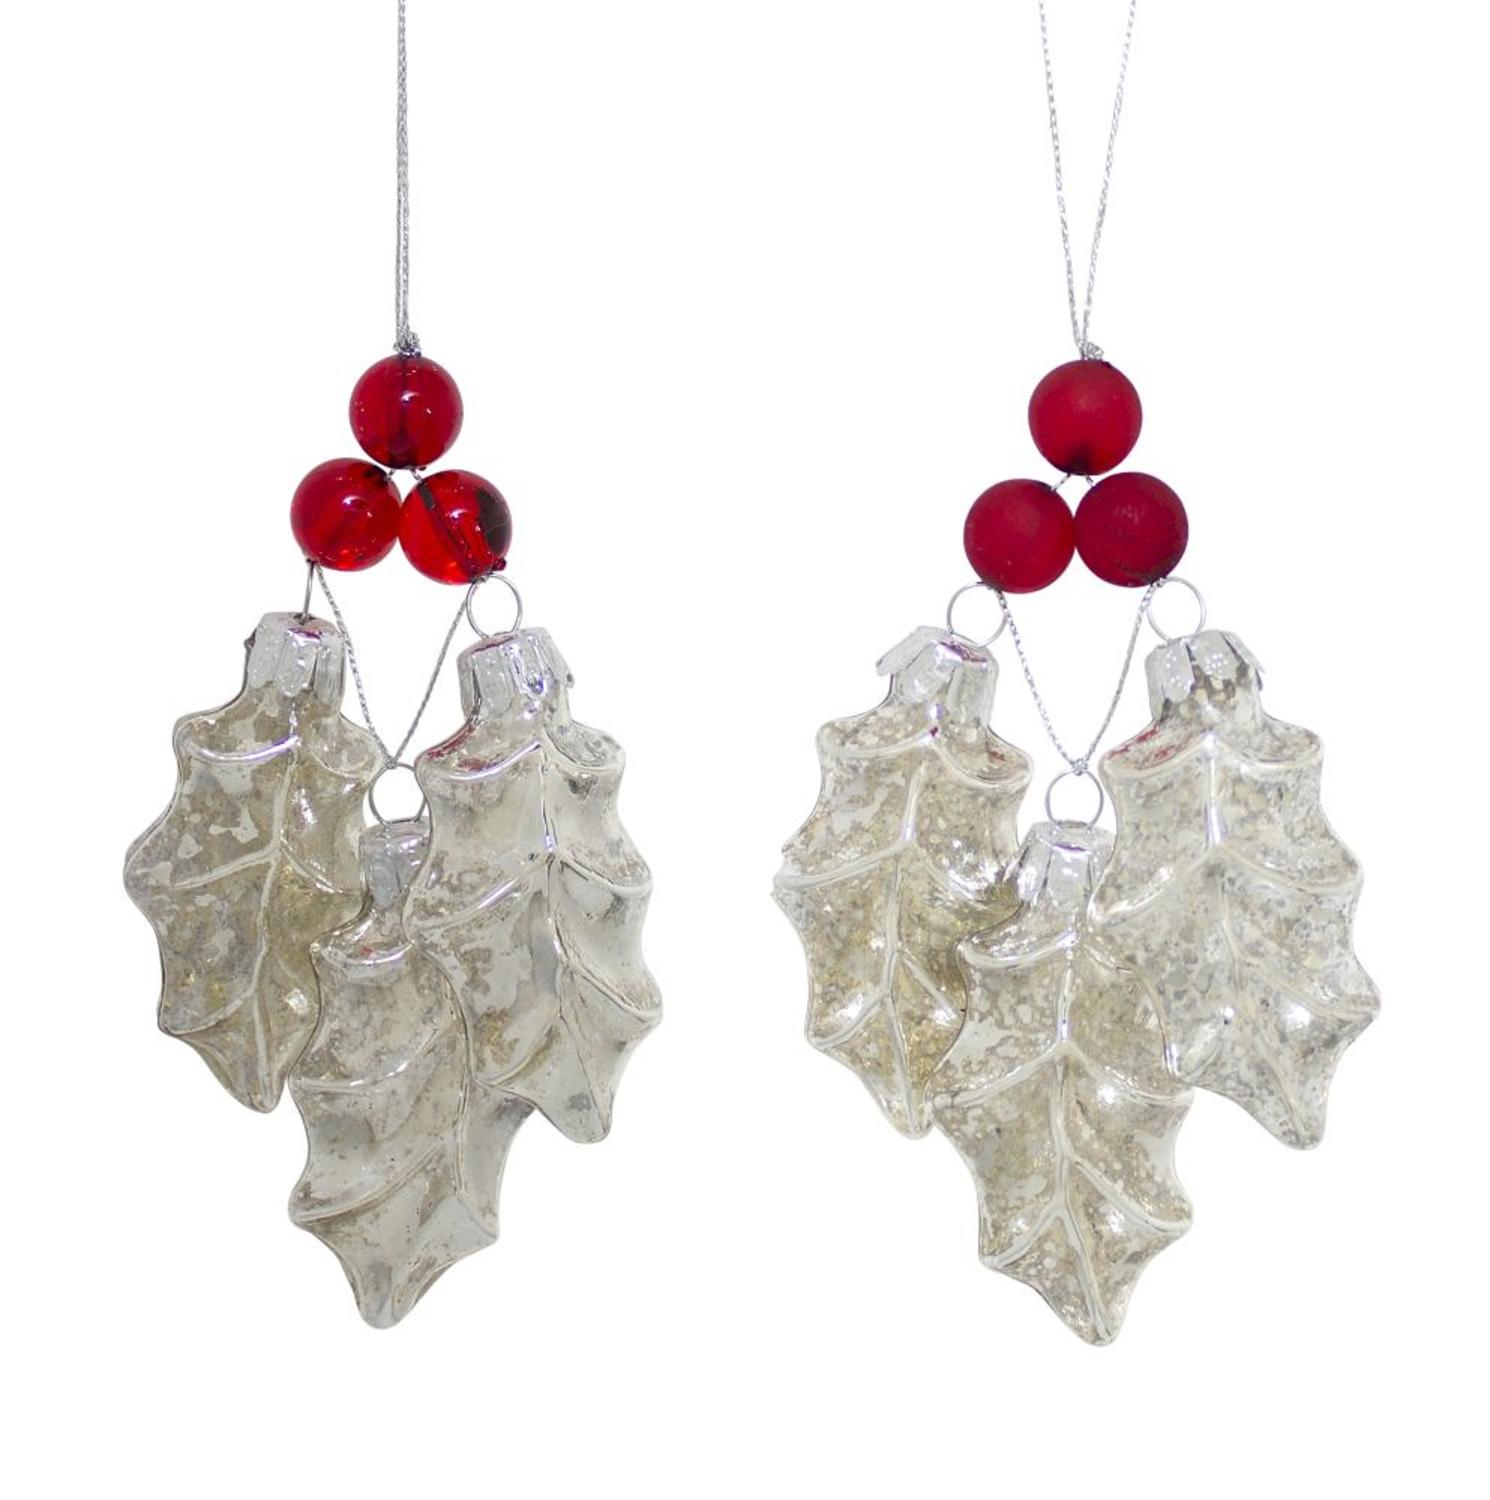 Melrose Holly and Berry Ornament - Set of 12